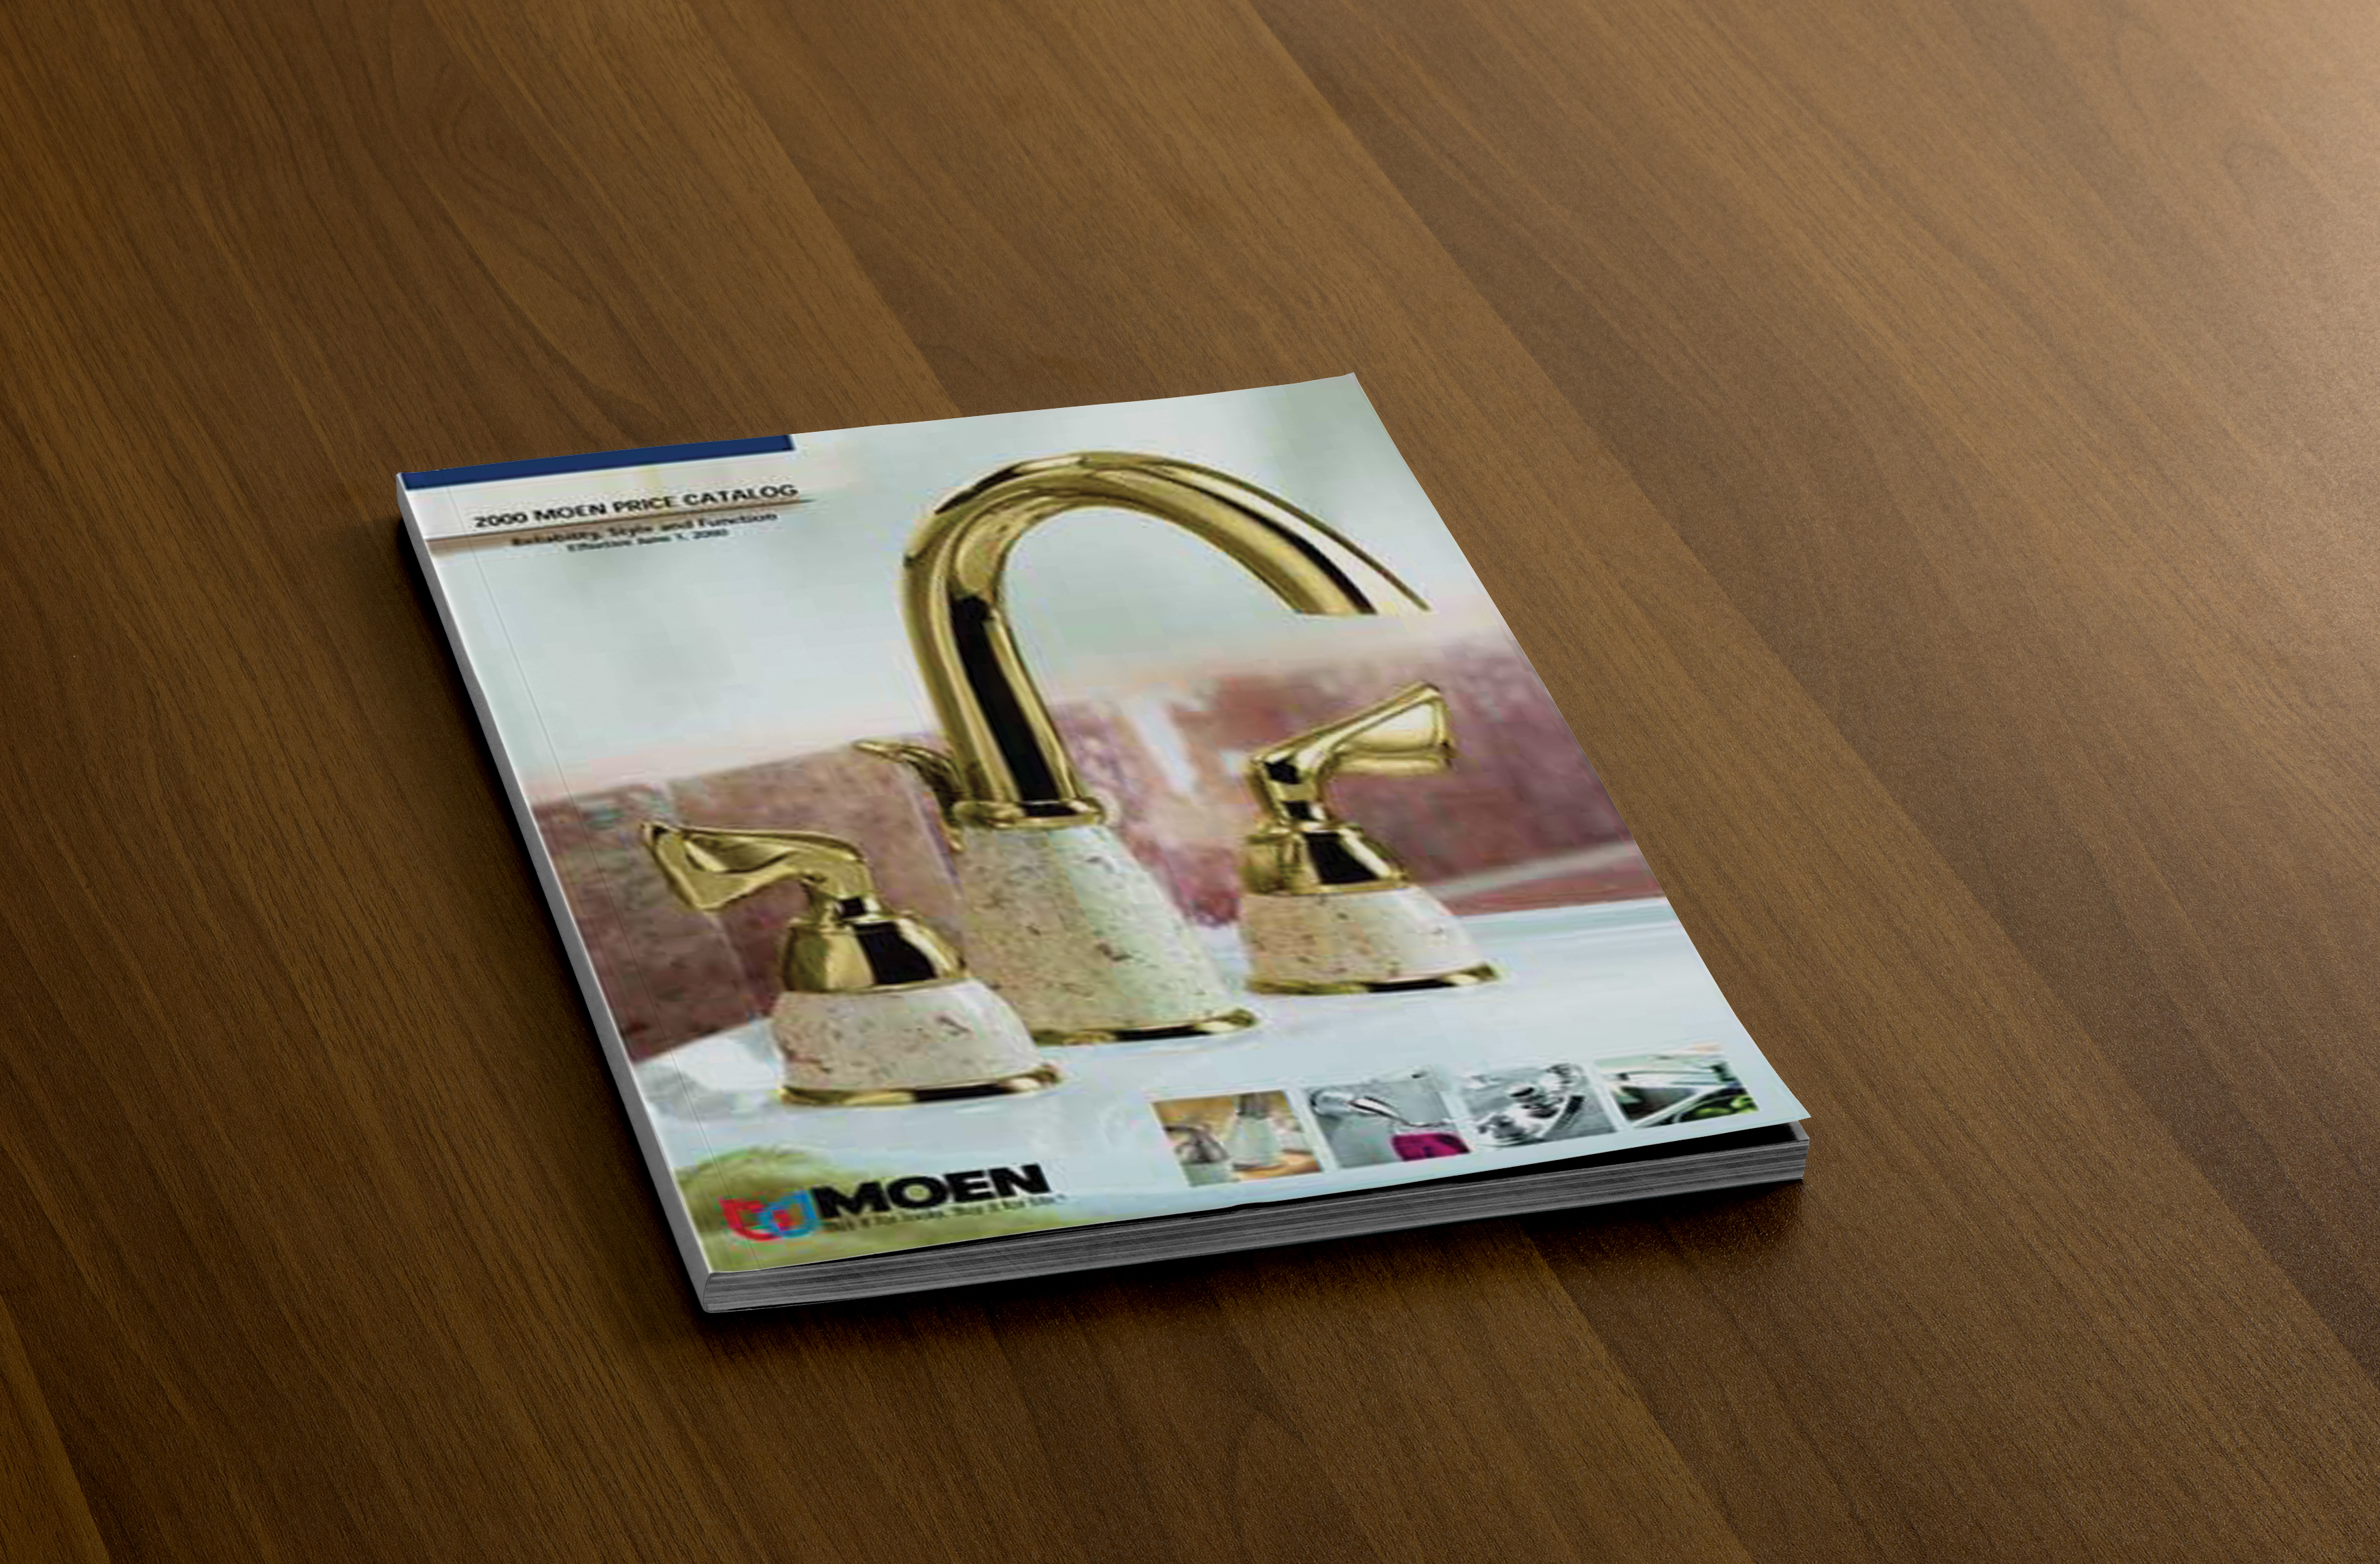 Moen Product Catalog